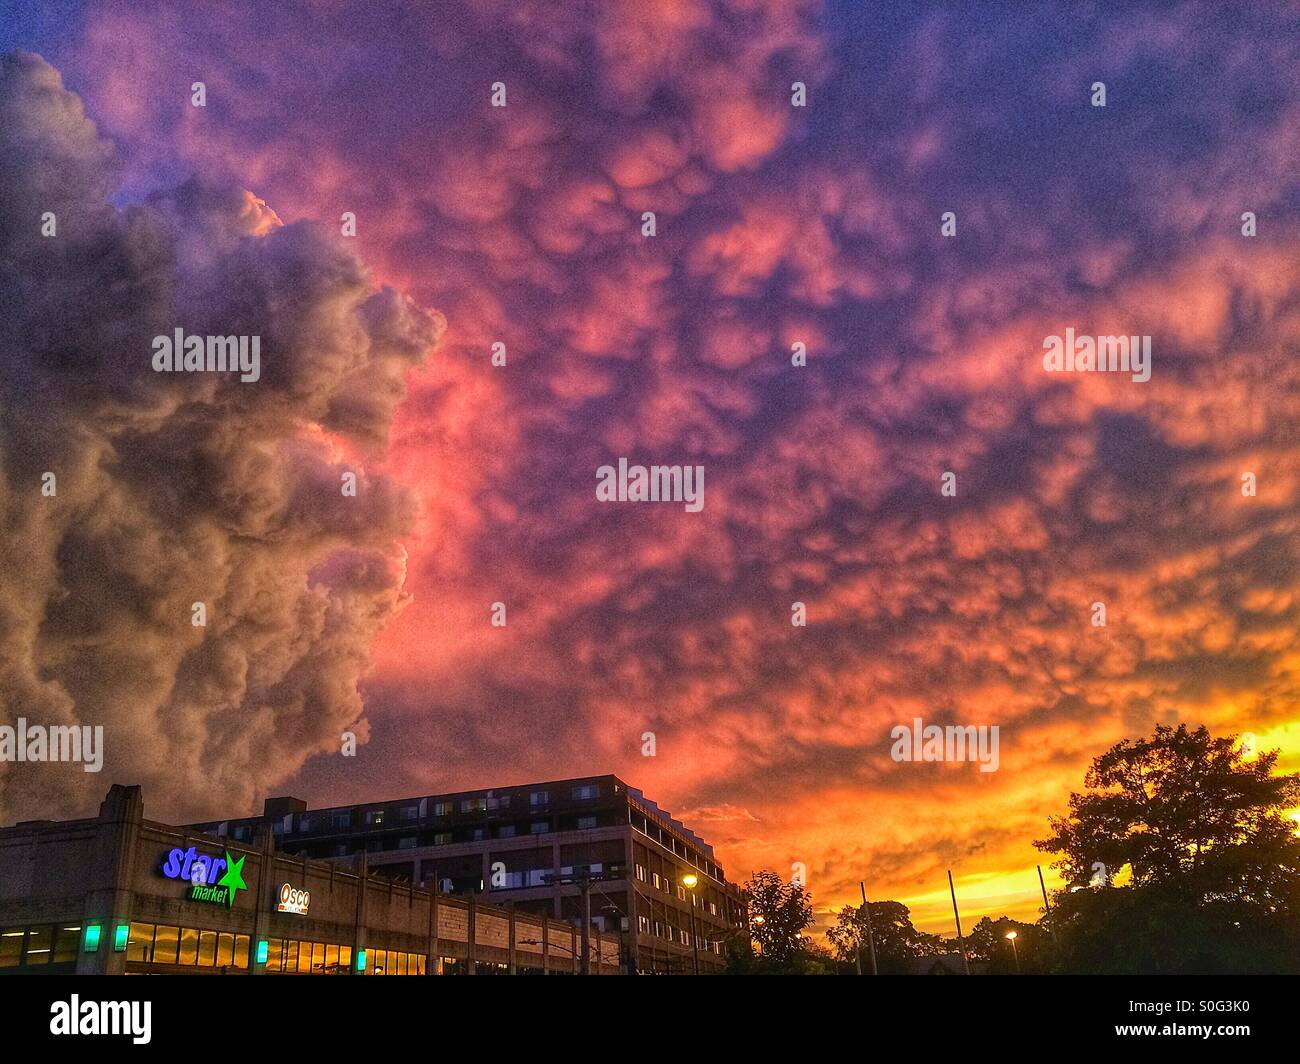 Star market dodging a storm - Stock Image